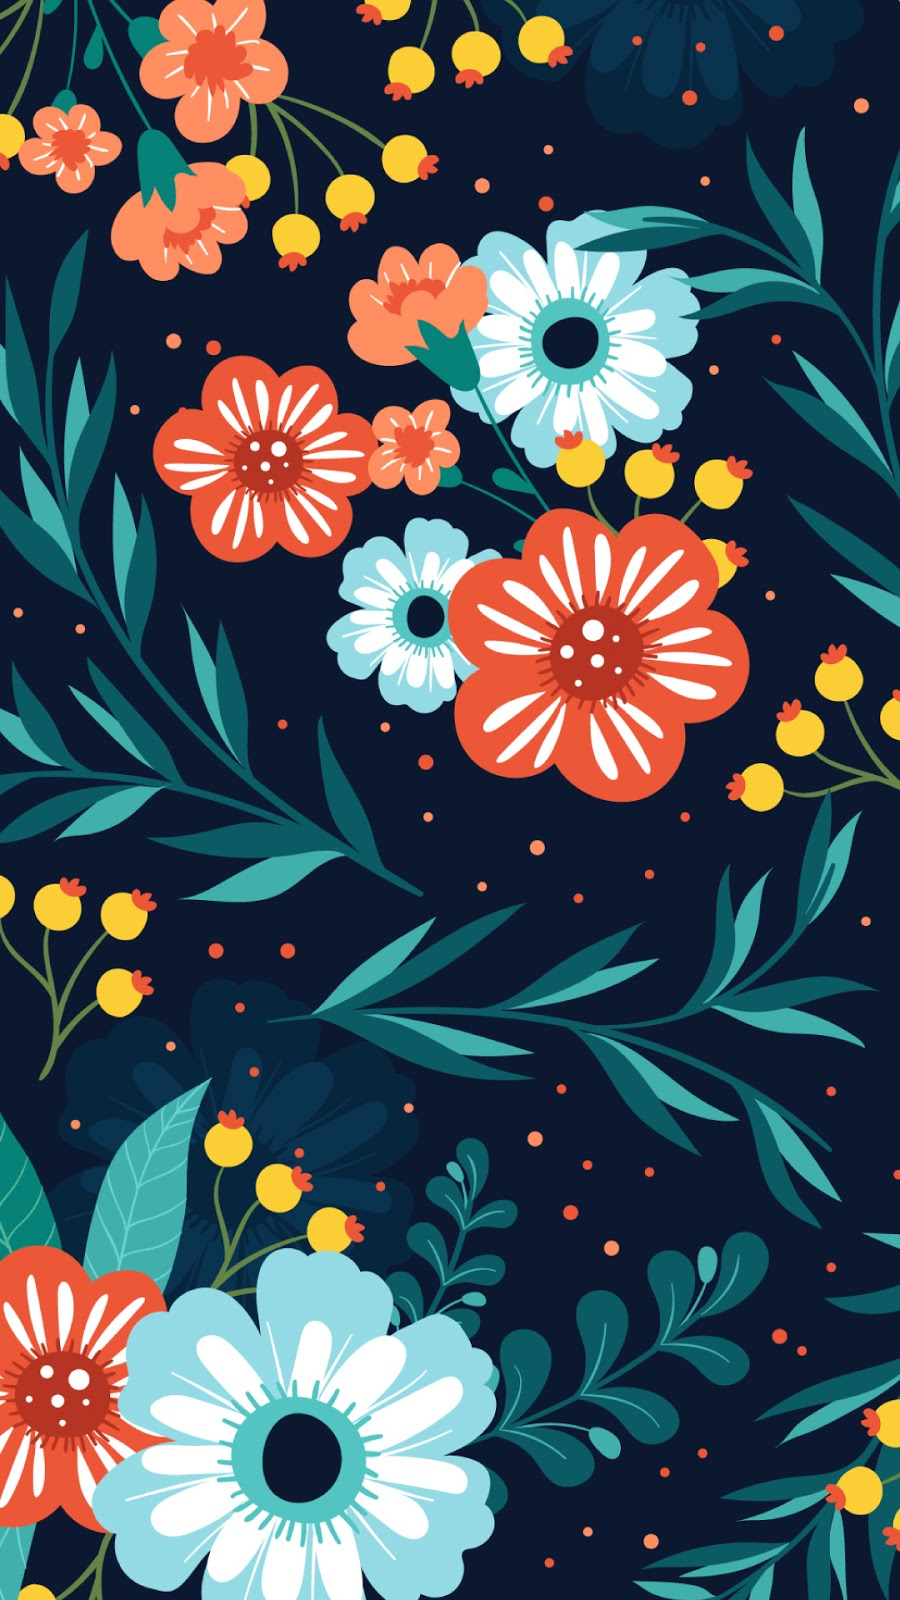 20 Vector Floral Wallpaper And Background Download Free Hd Images Images, Photos, Reviews